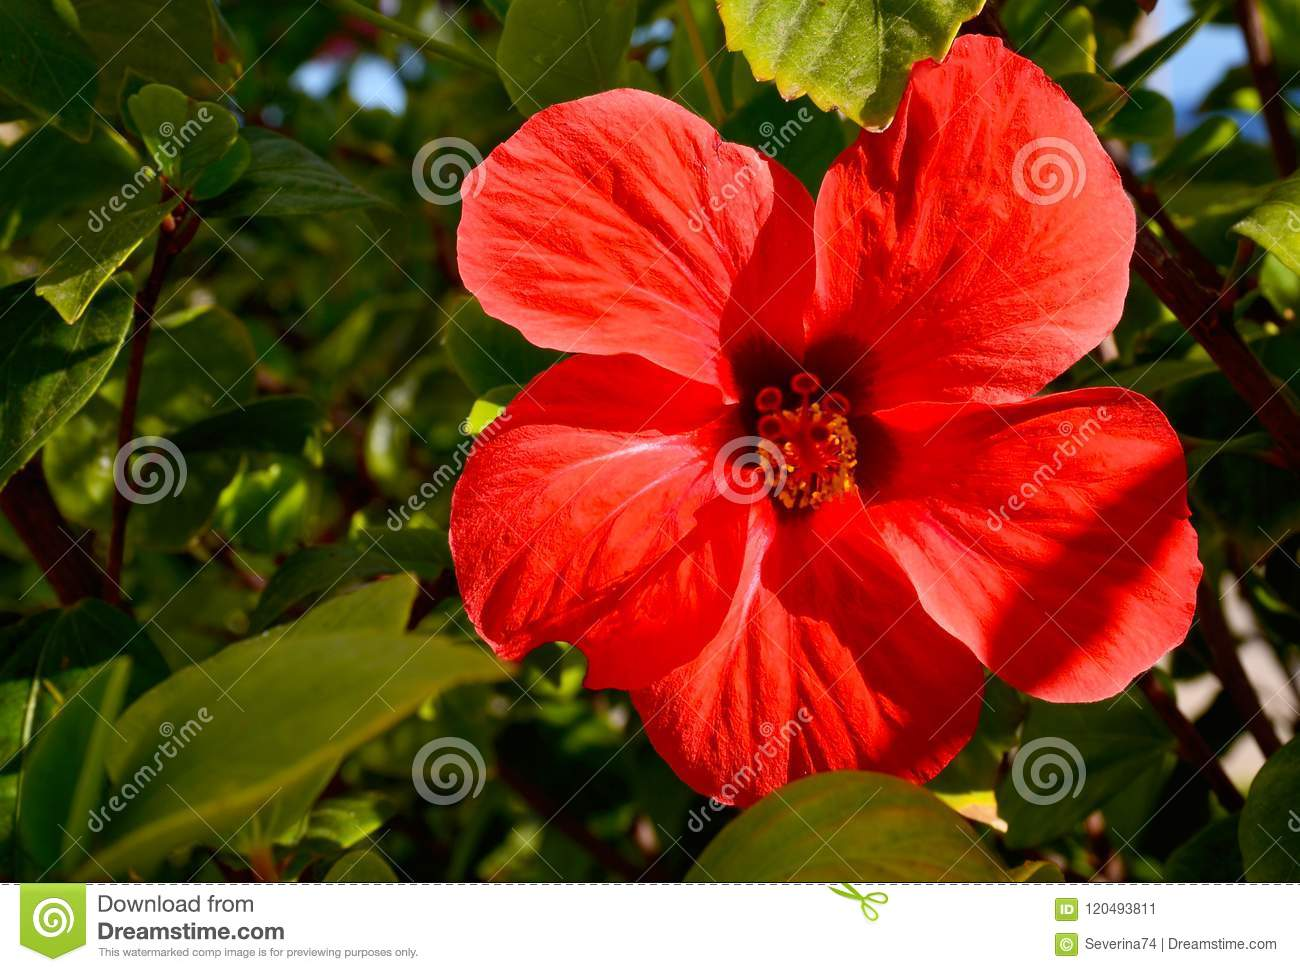 Red hibiscus flower in a tropical garden of tenerifecanary islands red hibiscus flower china rosechinese hibiscushawaiian hibiscus in a tropical garden of tenerifecanary islandsspainfloral backgroundlective focus izmirmasajfo